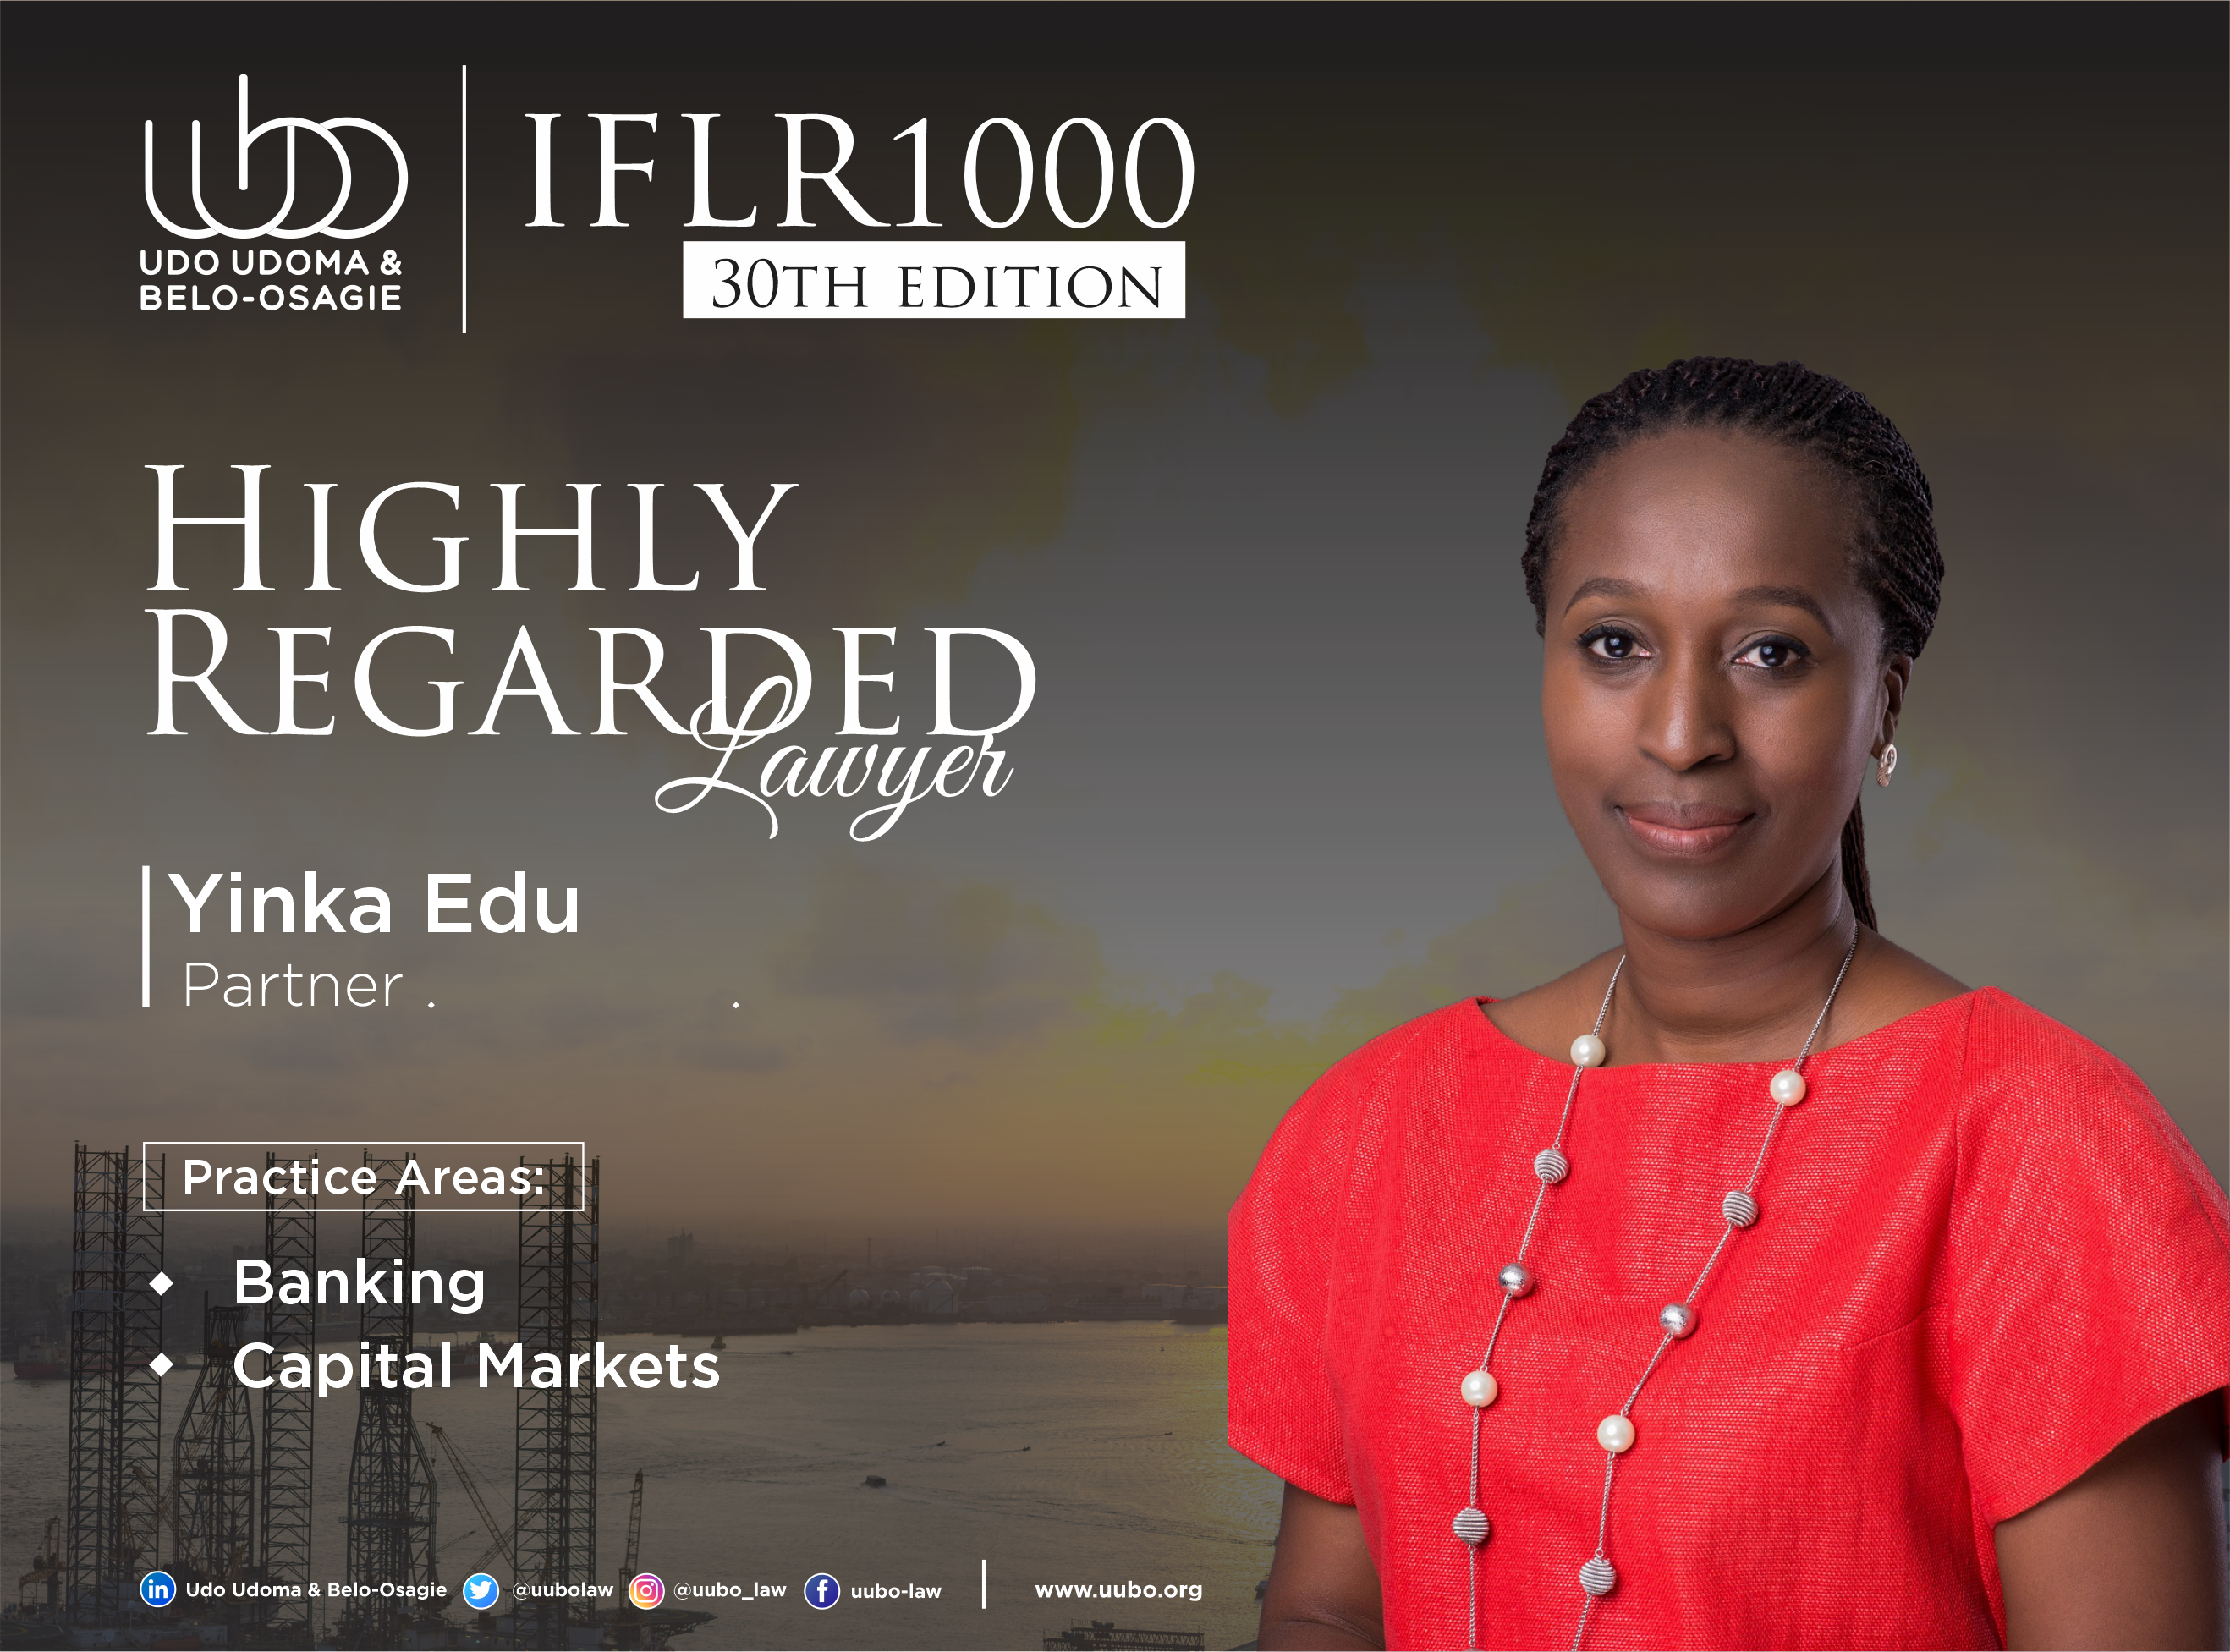 IFLR 100 30Th Edition YINKA EDU